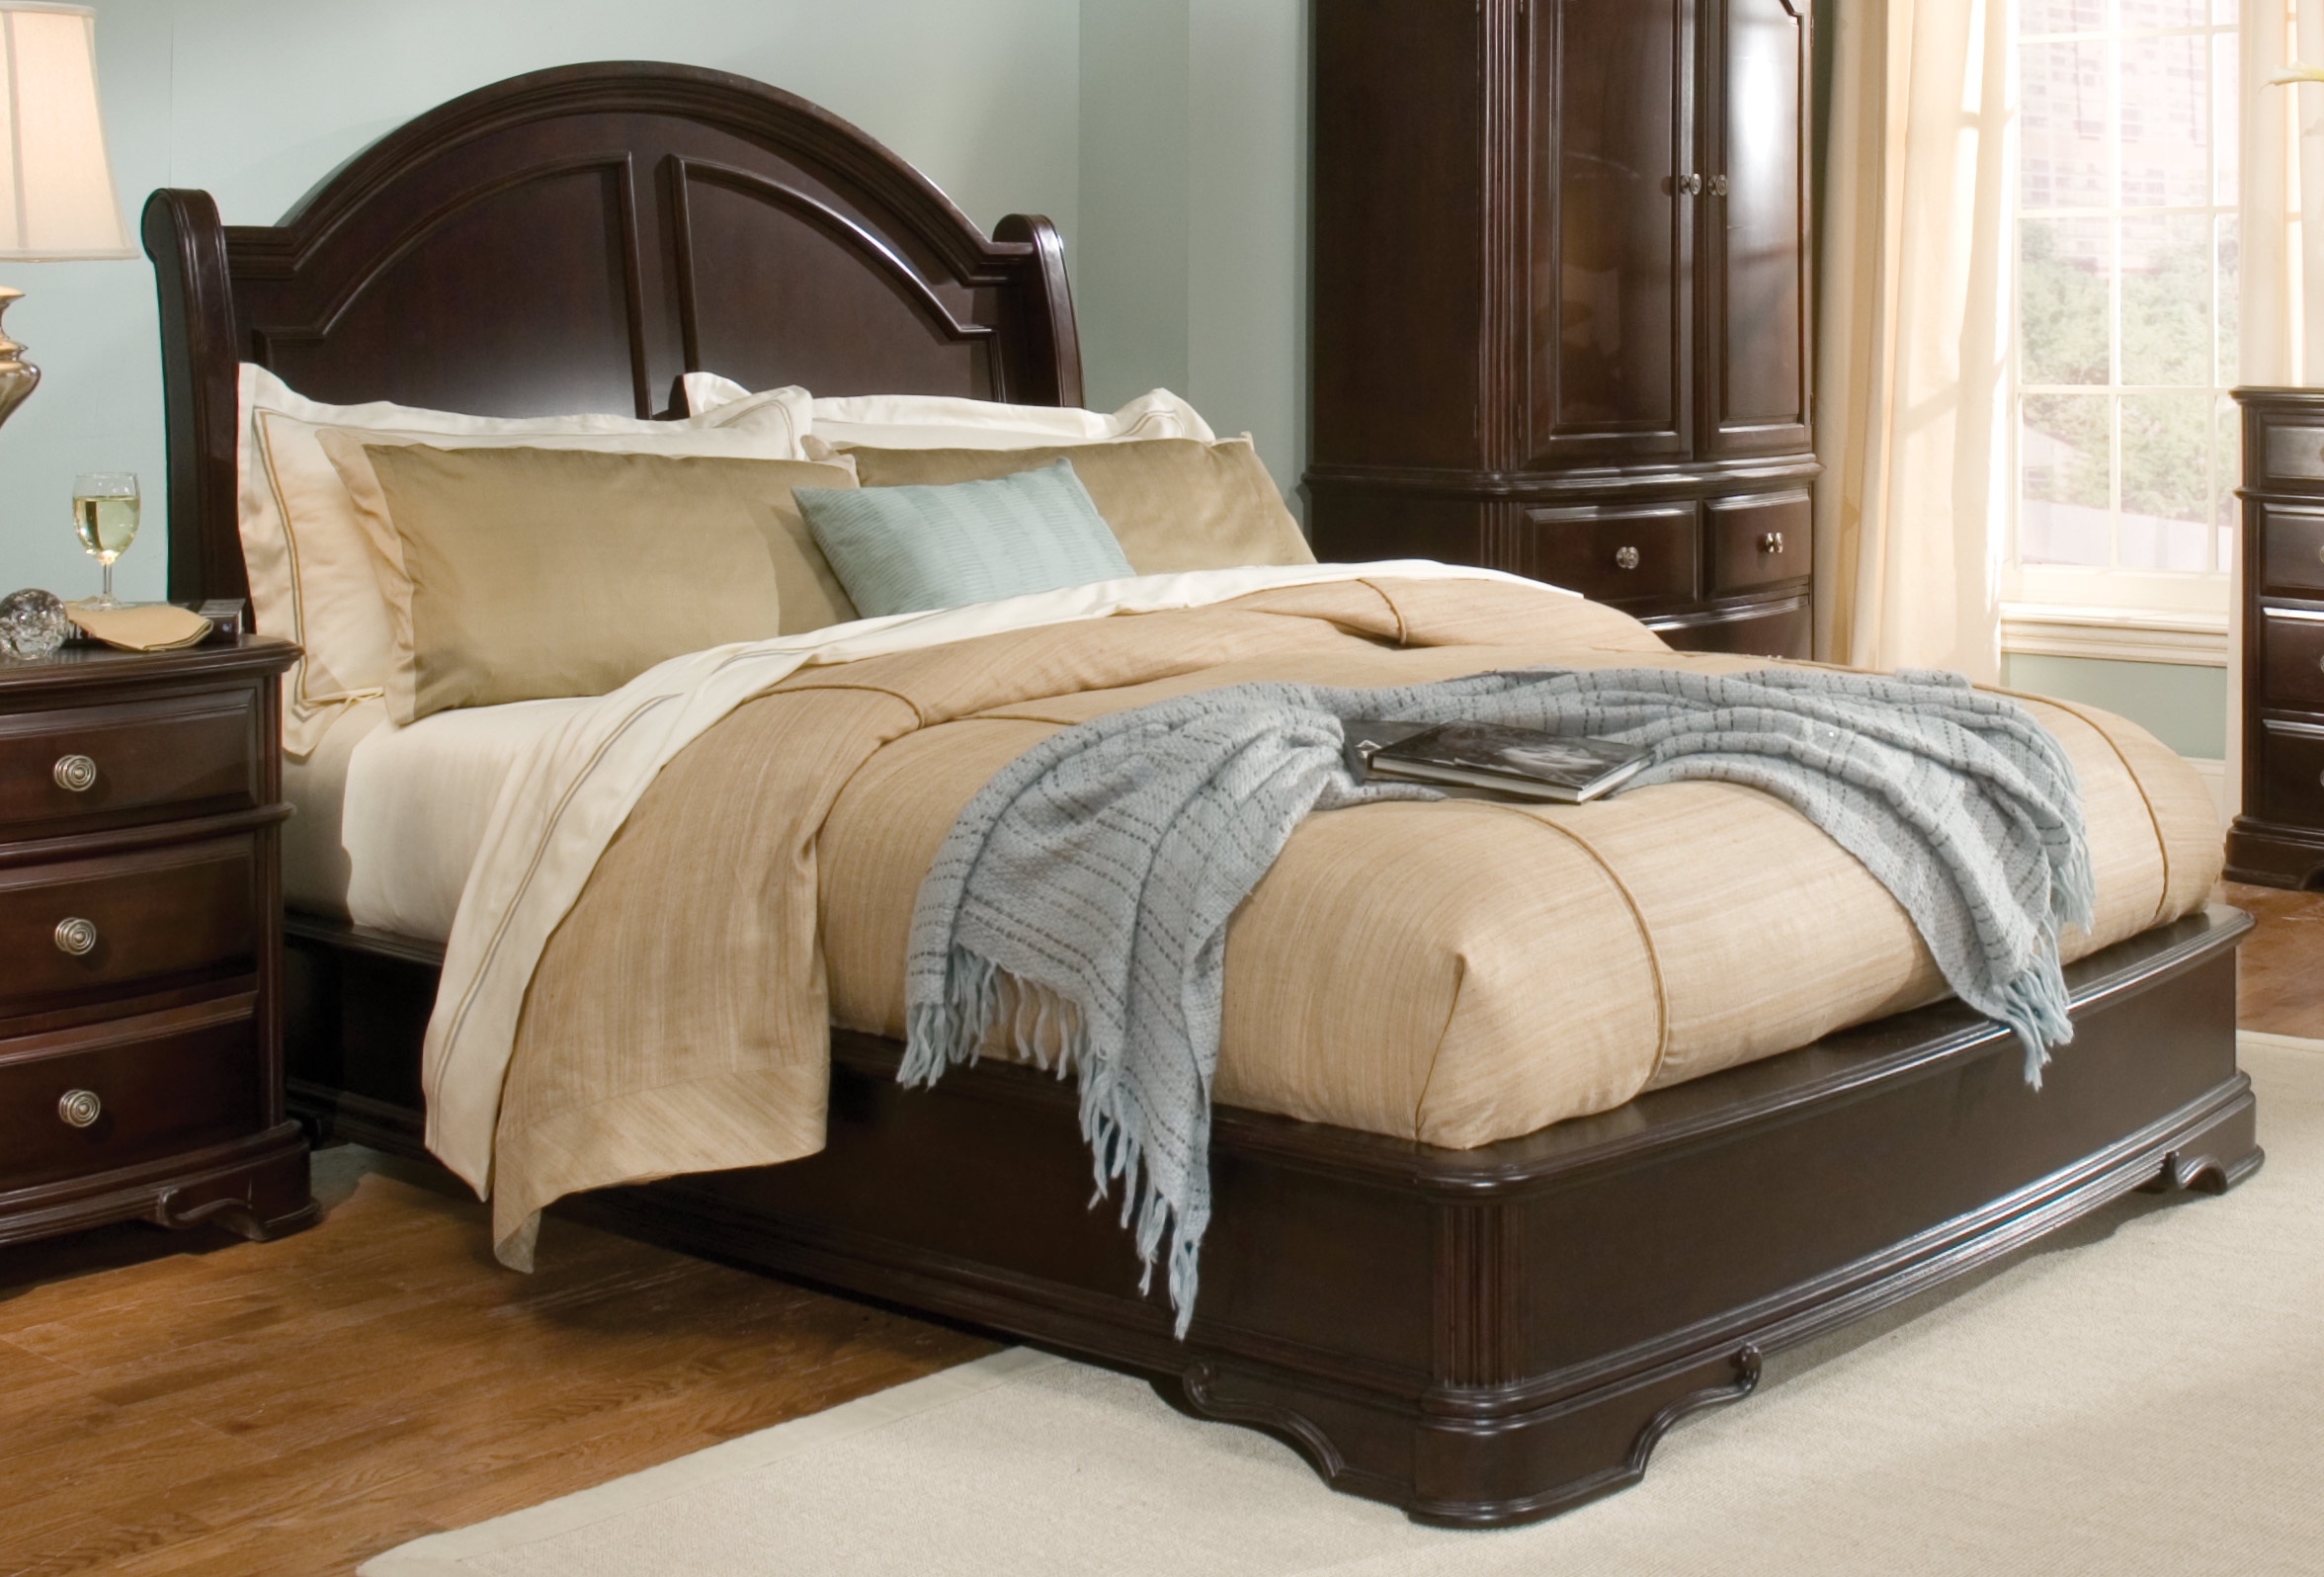 Homelegance Grandover Bed